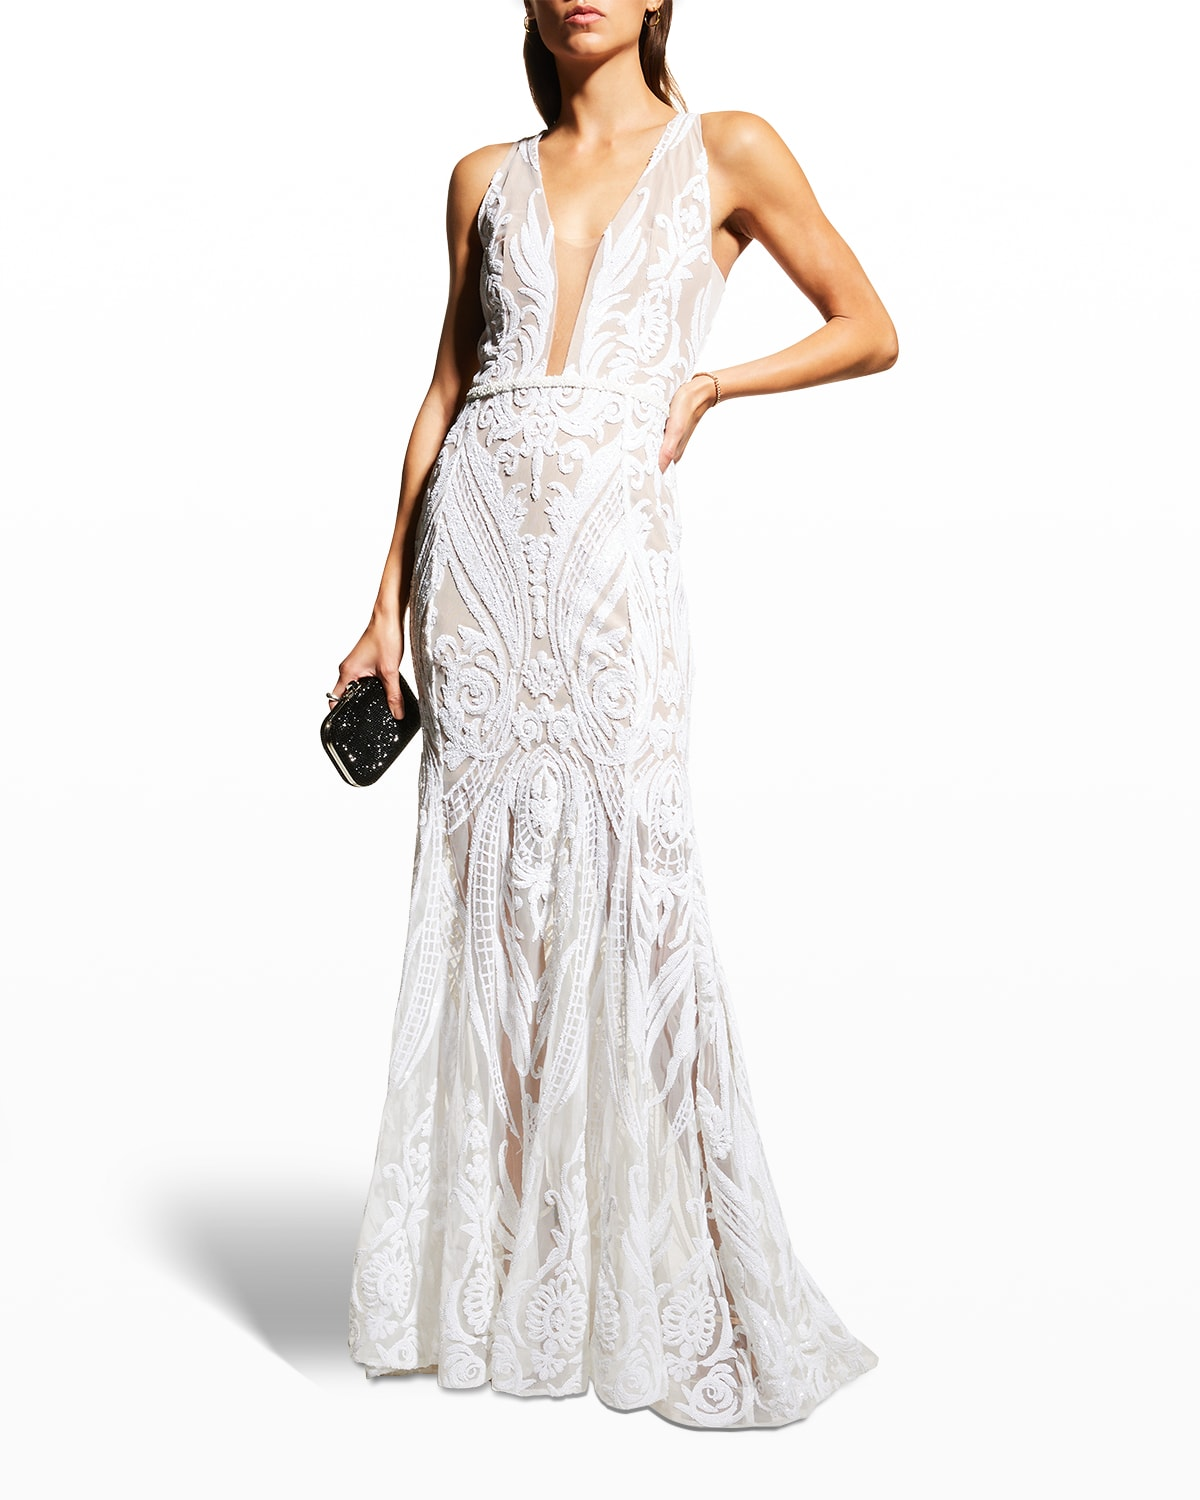 Ester Graphic Sequin-Embellished Gown